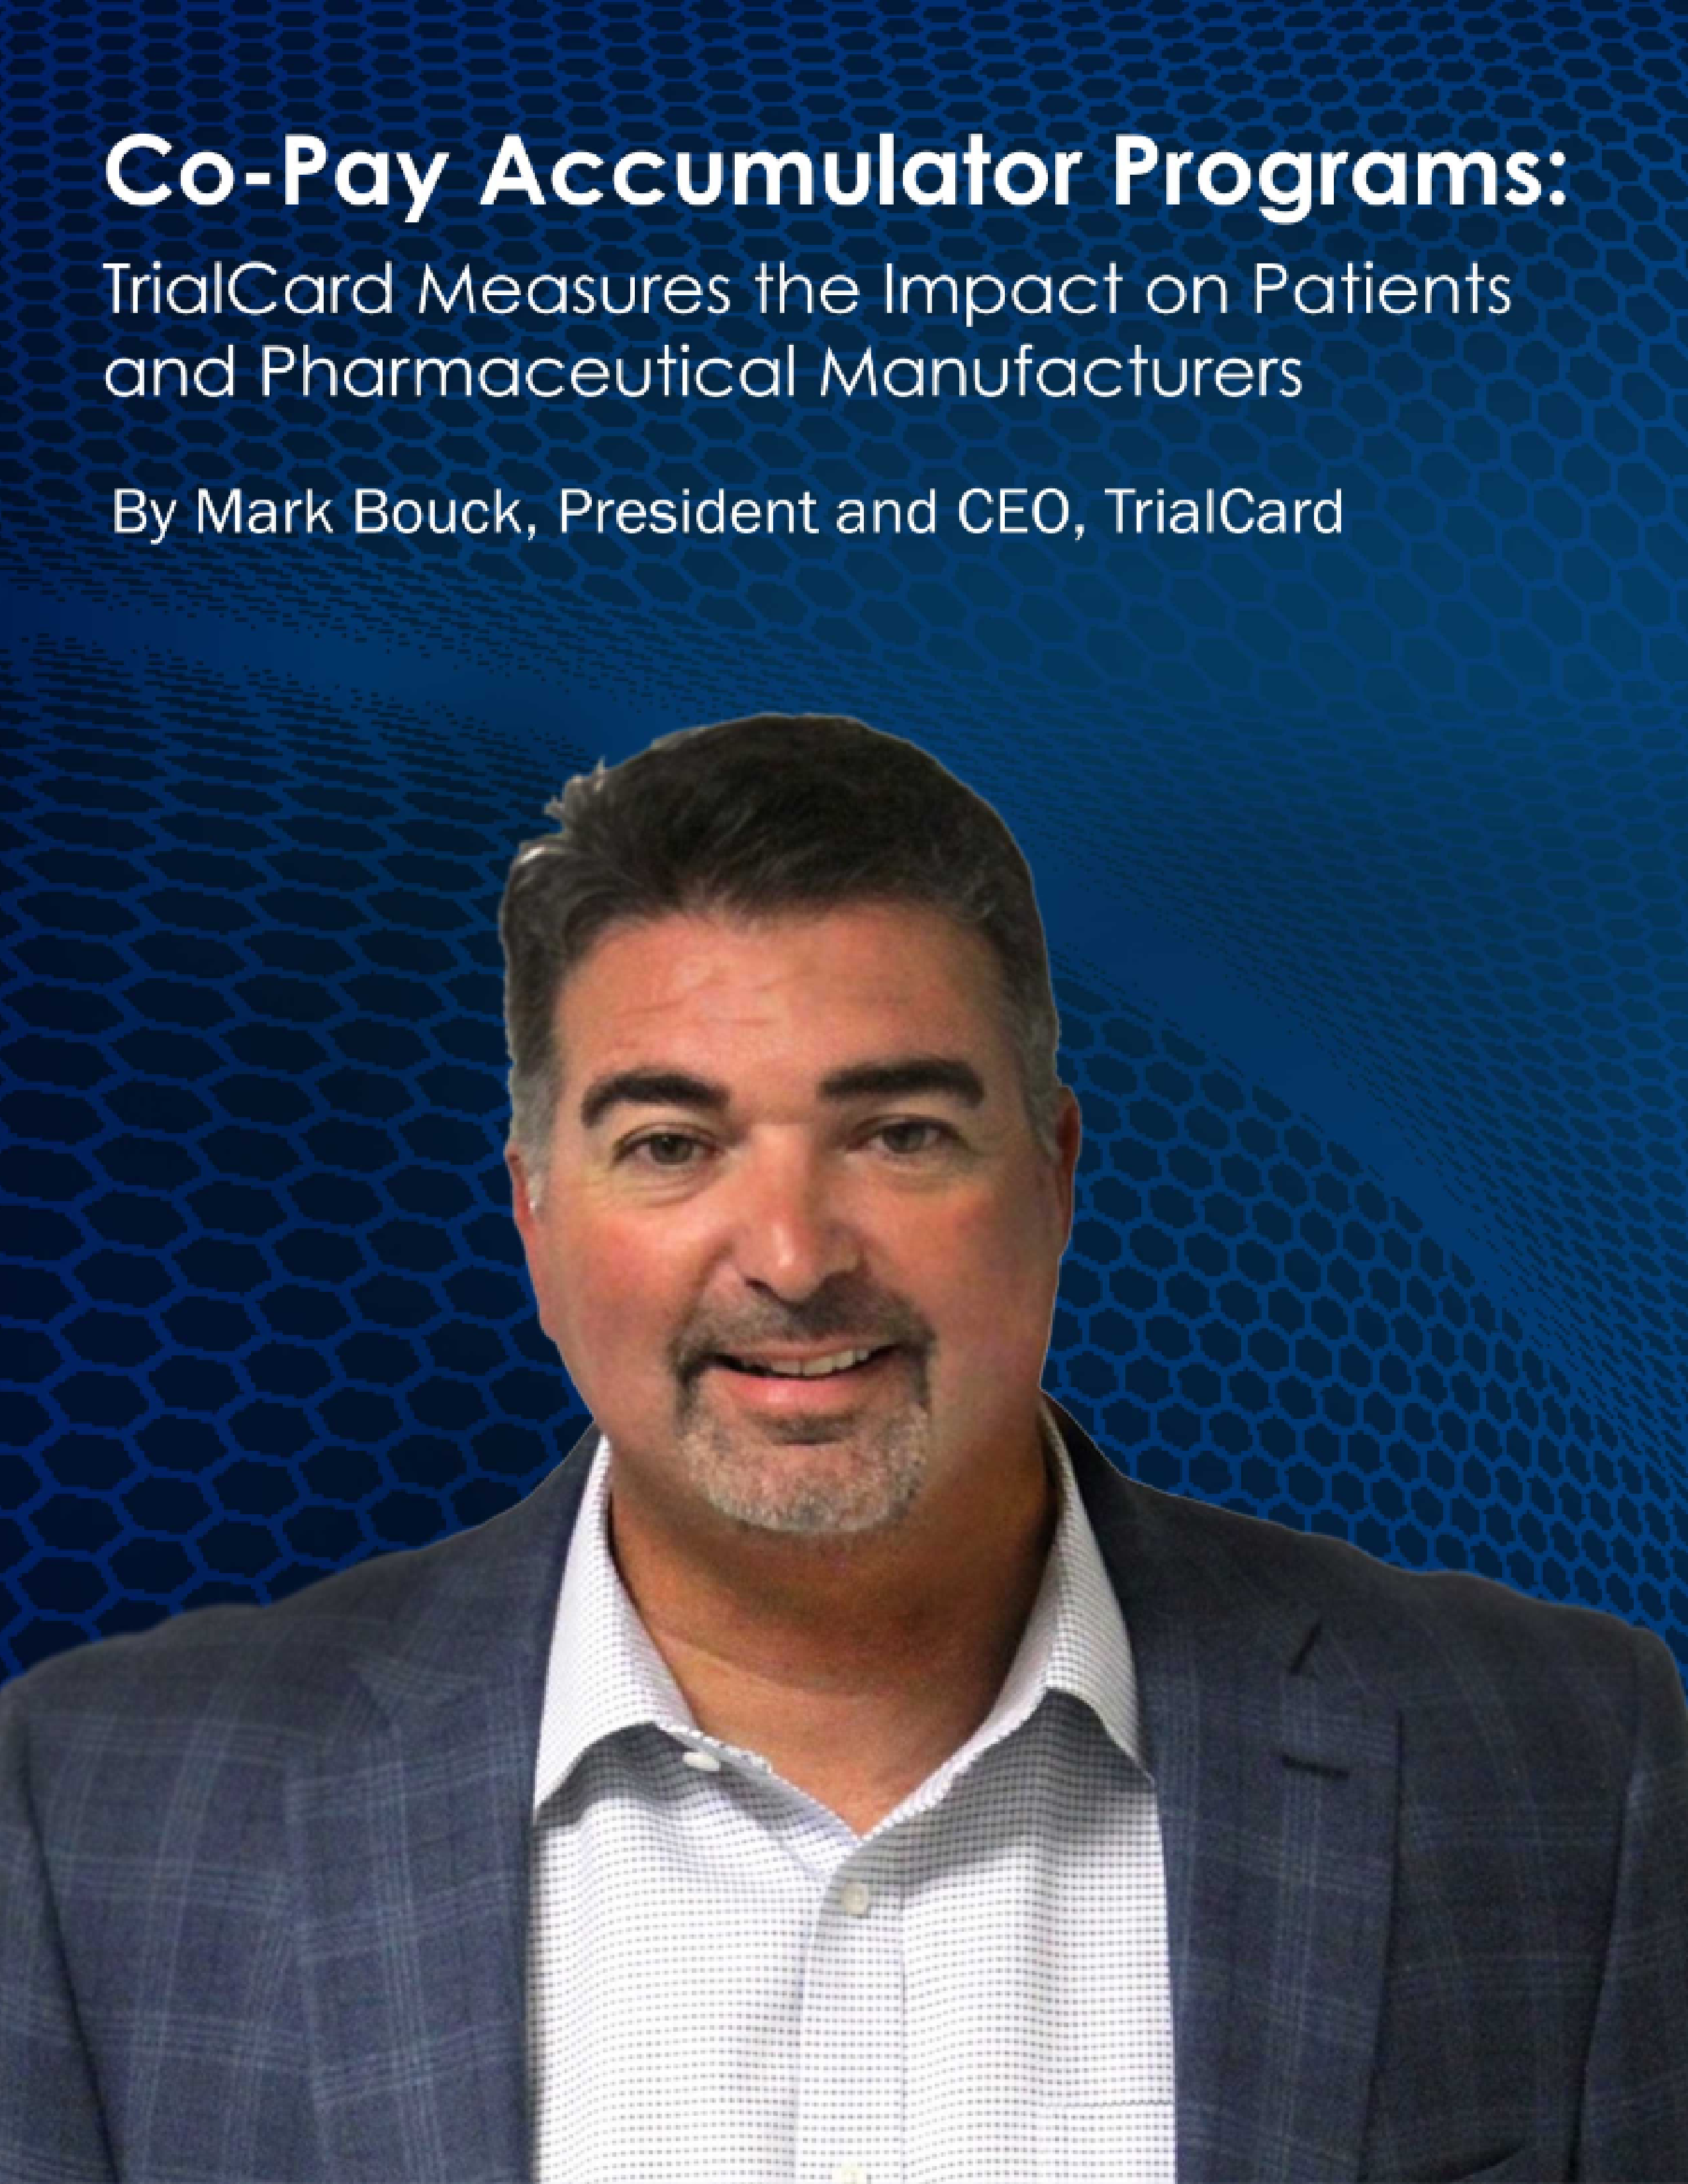 Co-Pay Accumulator Programs: TrialCard Measures the Impact on Patients and Pharmaceutical Manufacturers